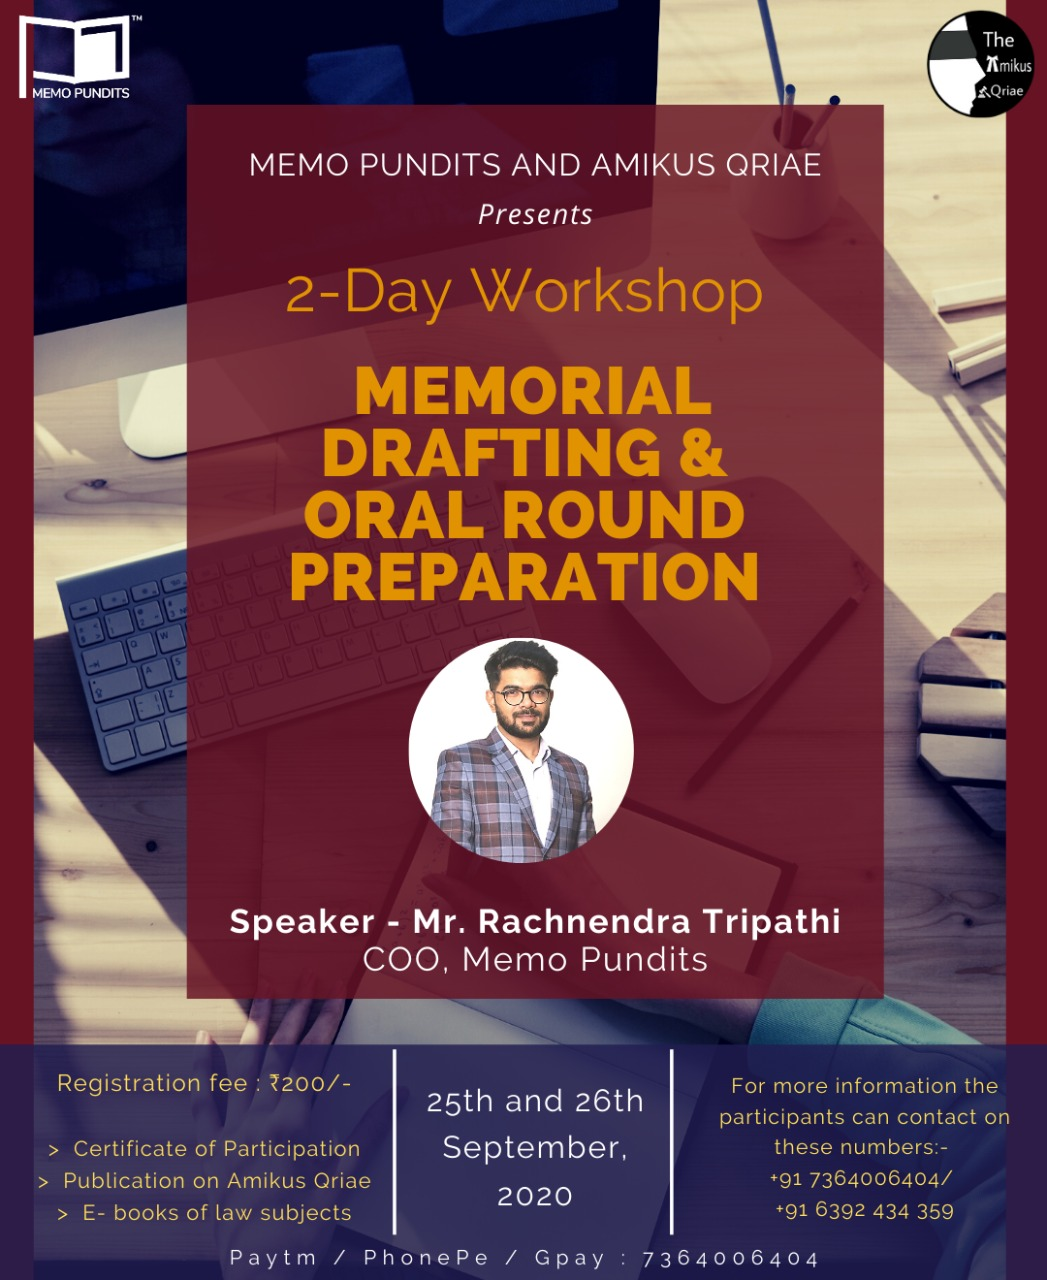 Memorial Drafting and Oral Round Preparation for Moots [2-day Workshop] by Memo Pundits and Amikus Qriae